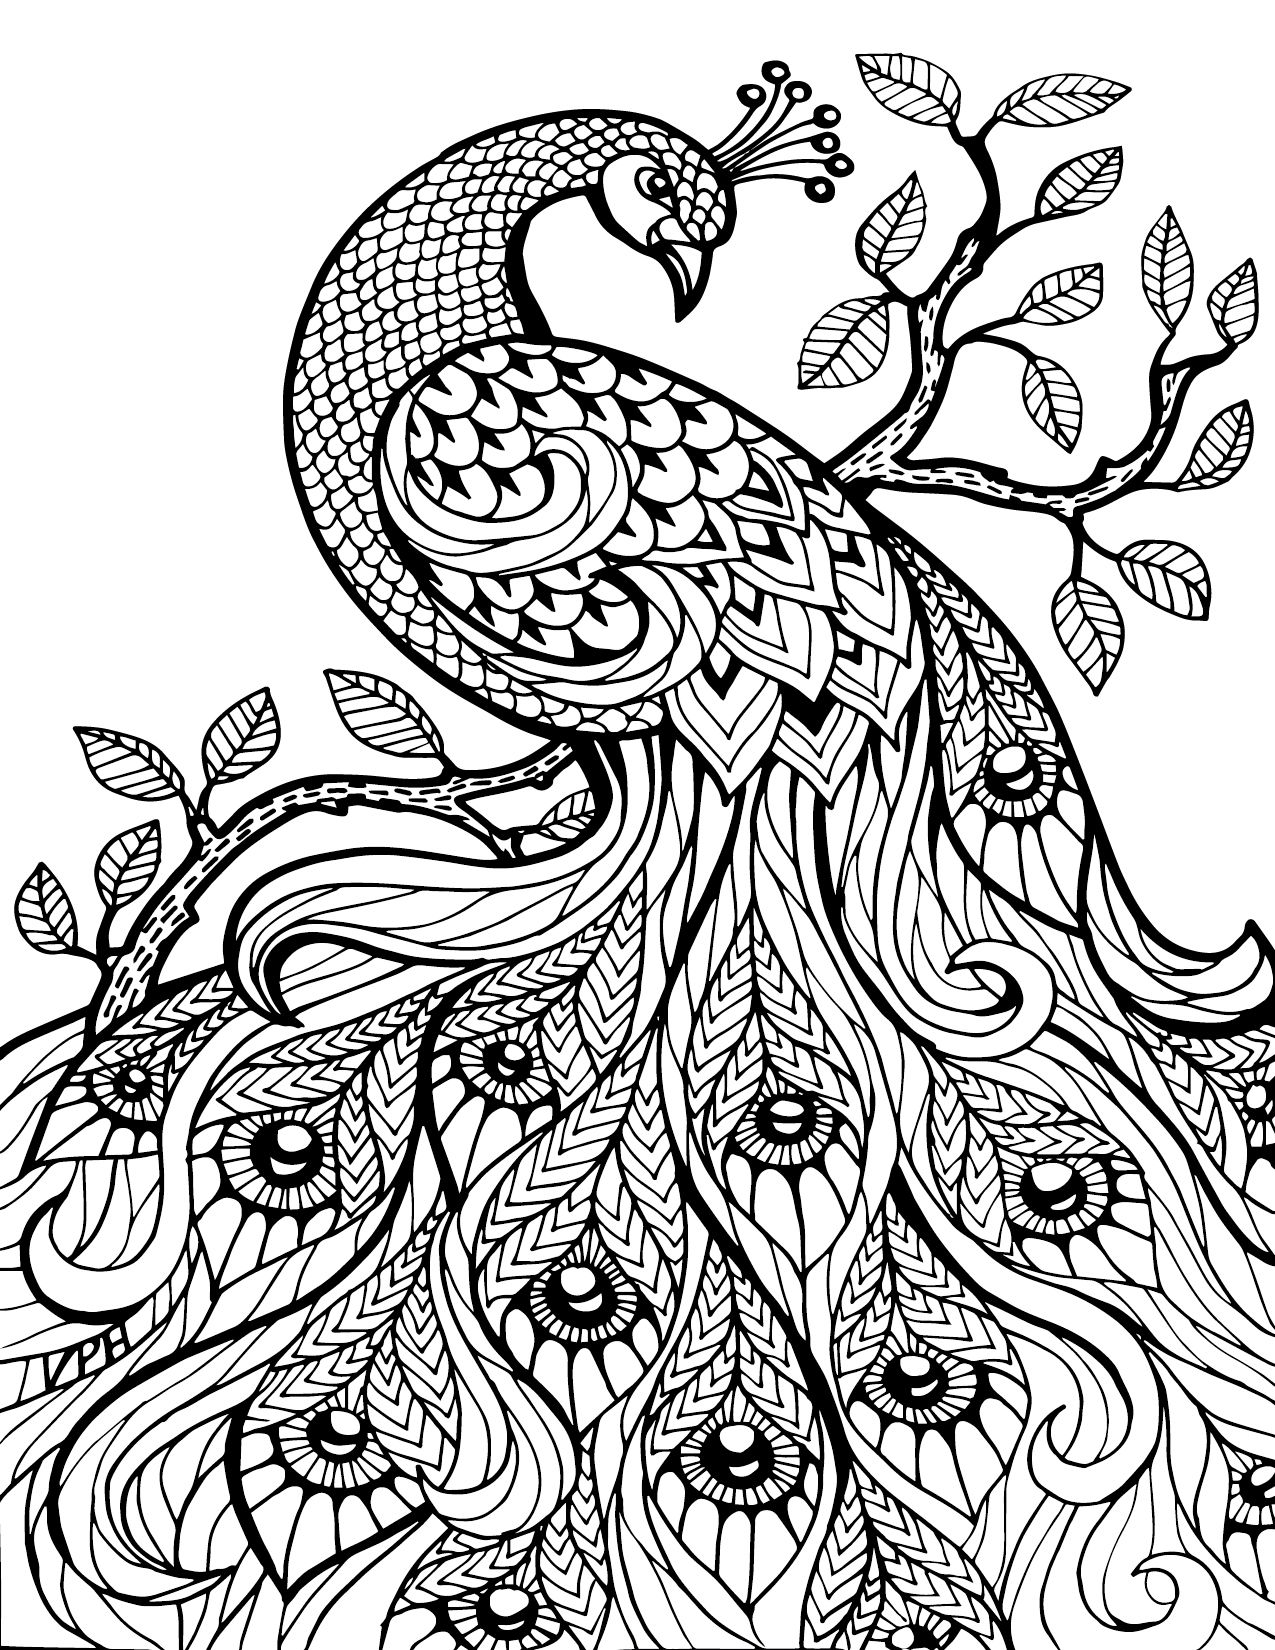 Colouring sheets to colour - Free Printable Coloring Pages For Adults Only Image 36 Art Davlin Publishing